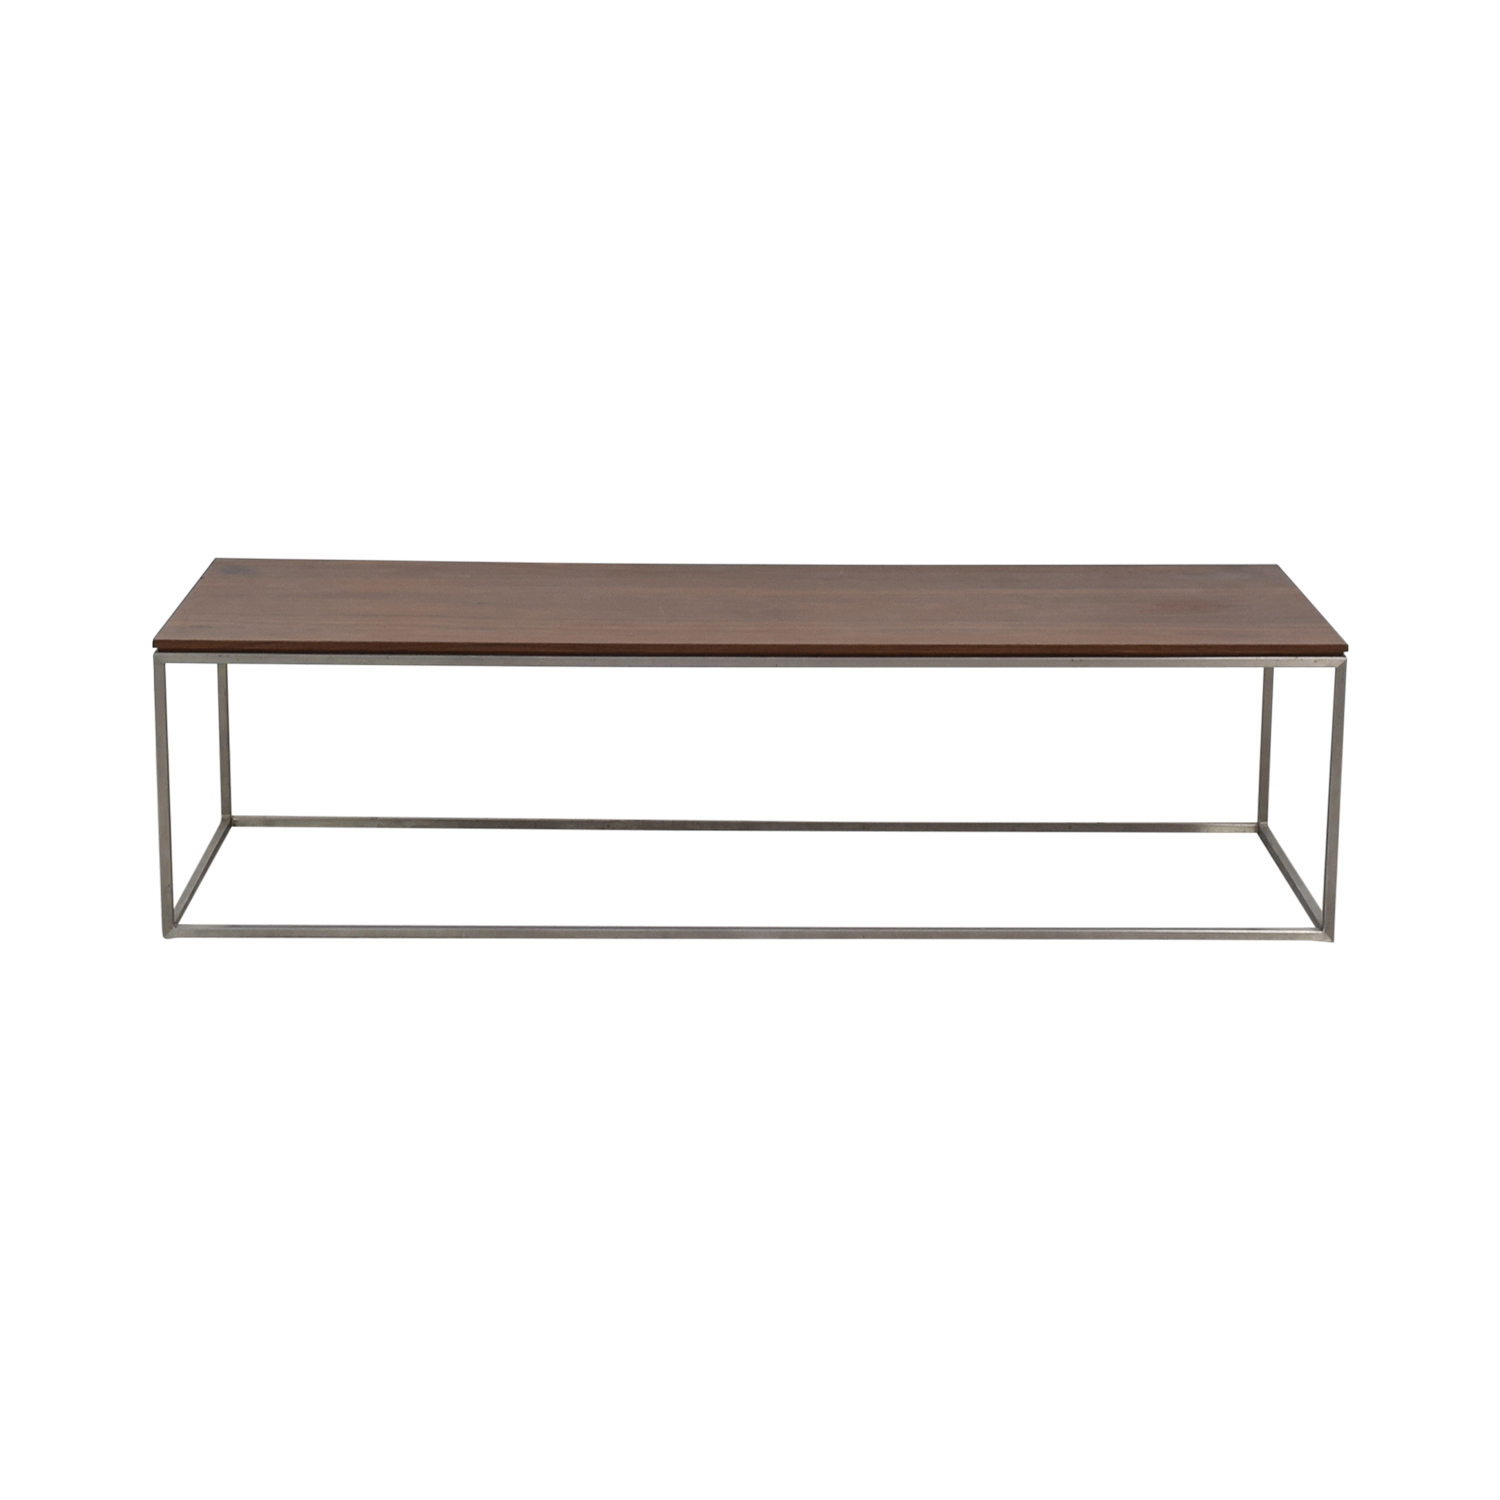 Crate & Barrel Crate & Barrel Frame Coffee Table price